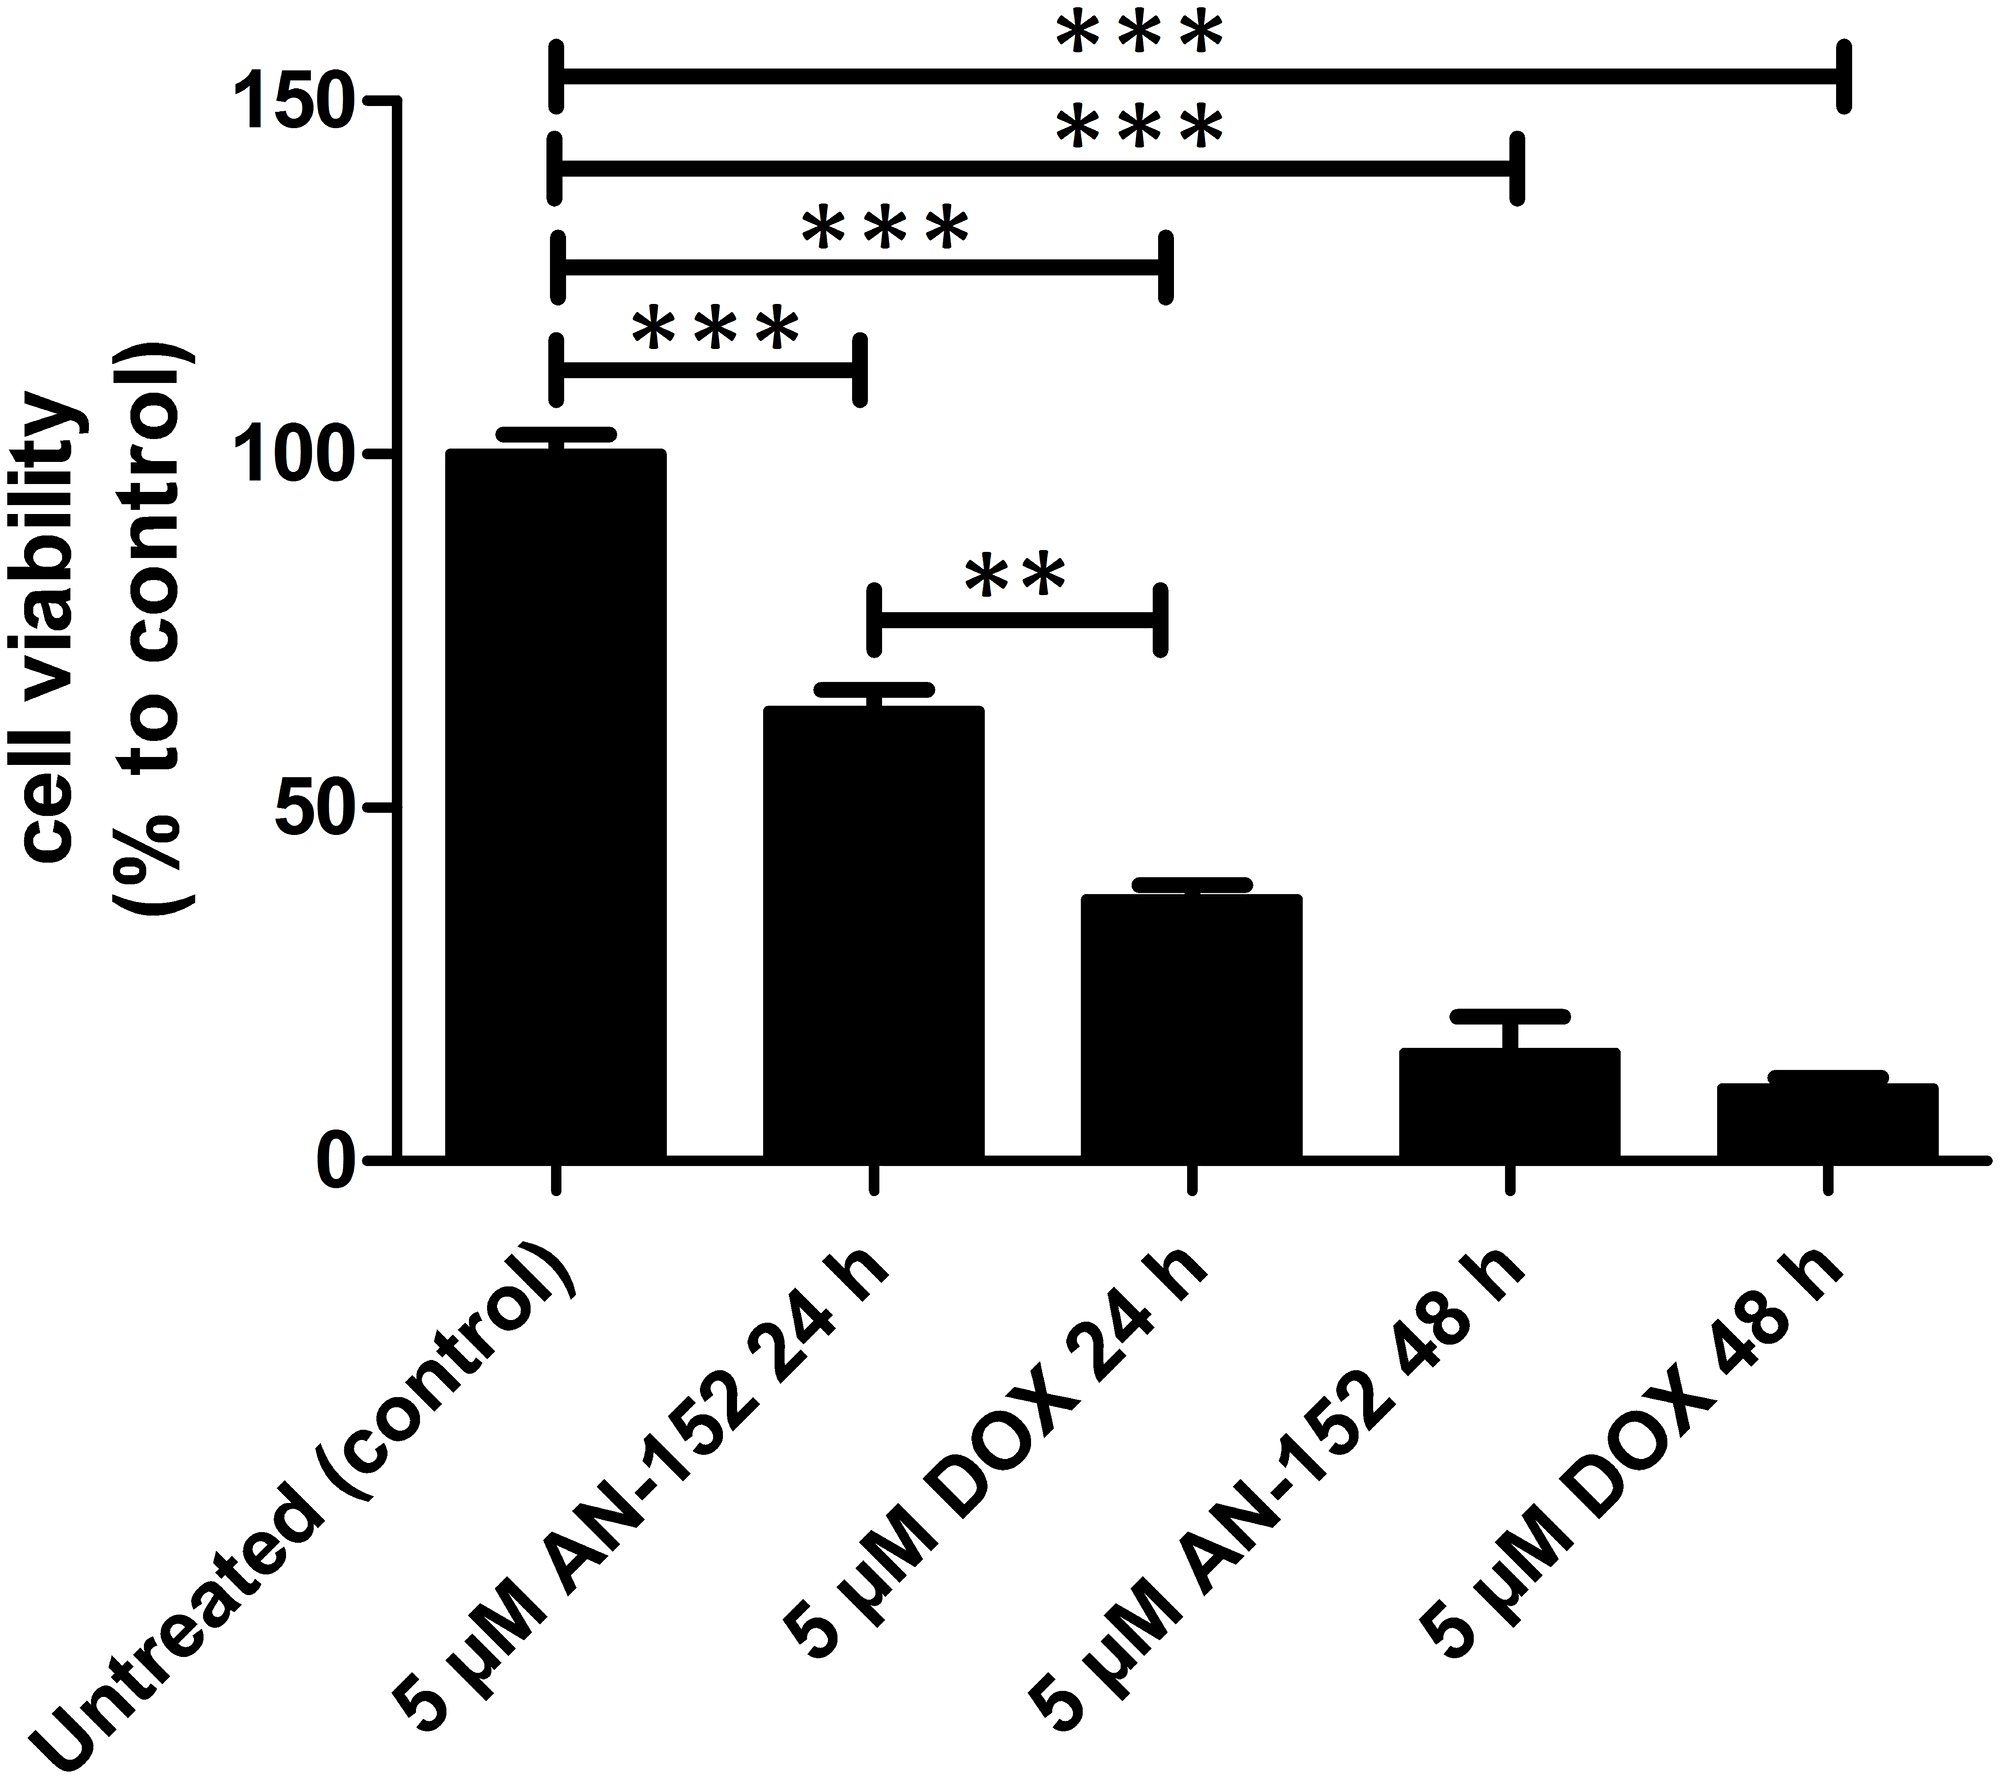 The cytotoxicity of AEZS-108 and DOX in OCM3 cells.